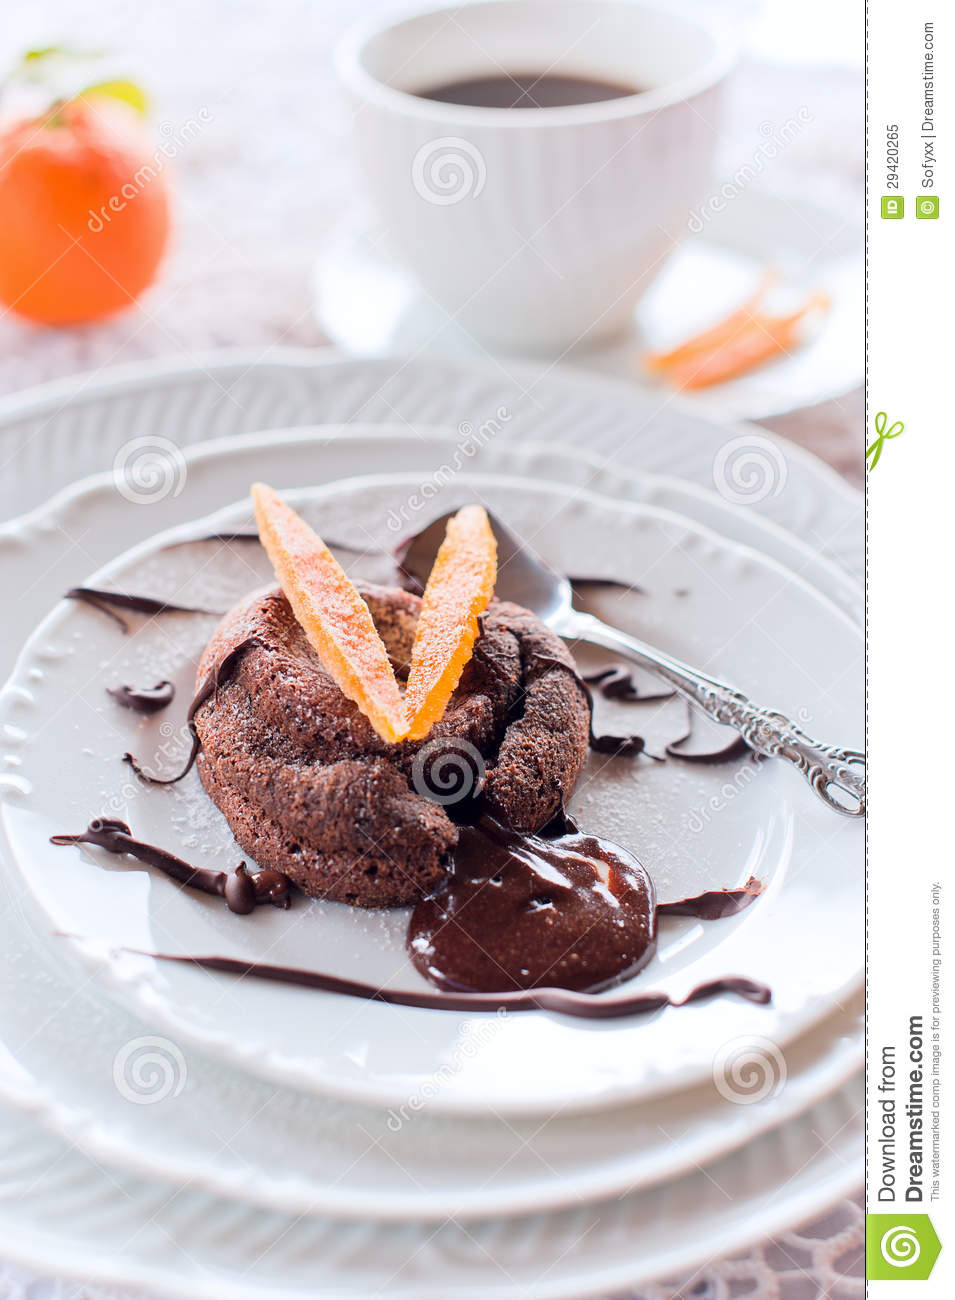 Chocolate Orange Peel Cake